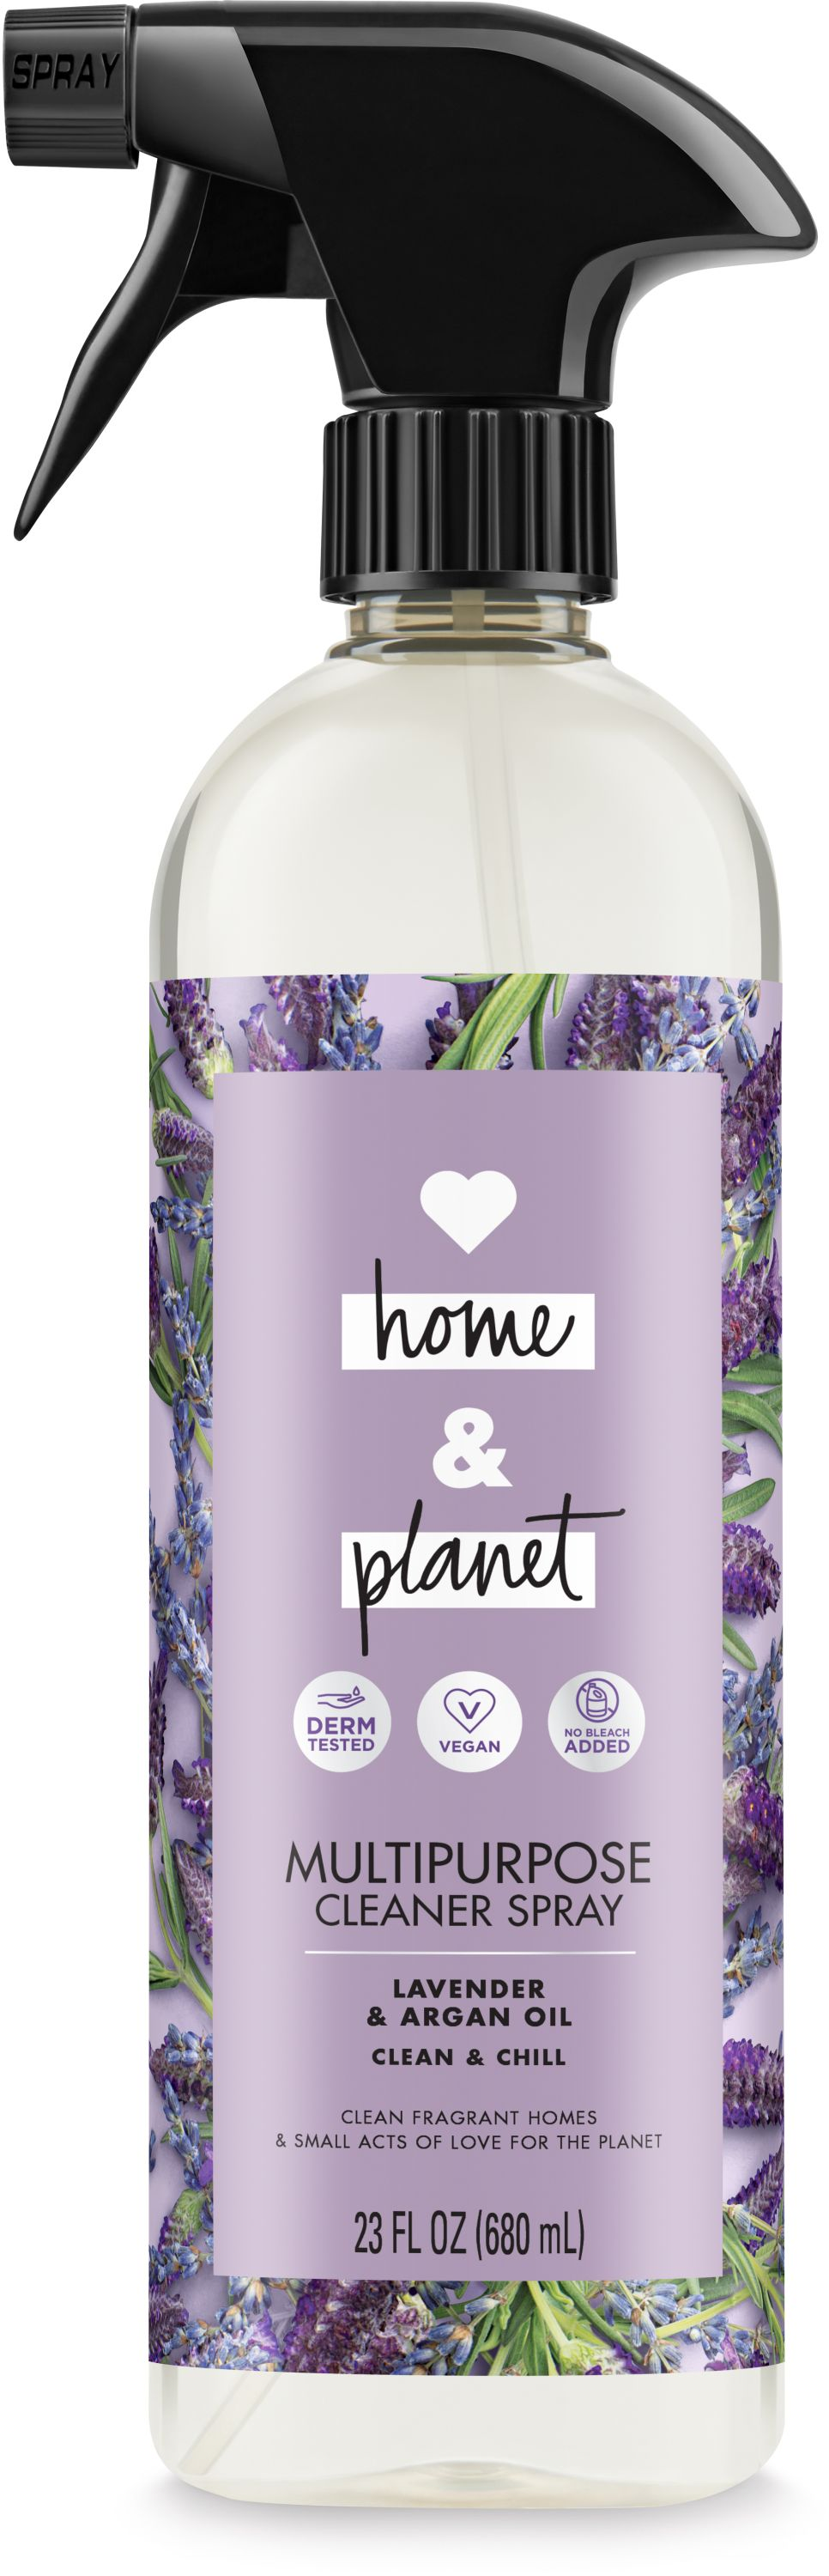 Home and Planet Multipurpose Cleaner Spray Lavender ... Home And Planet on home science, home of superman krypton, home tree, home school, home color, home ice, home truck, home of superman metropolis illinois, home flower, home community, home tower, home food, home fire, home satellite,